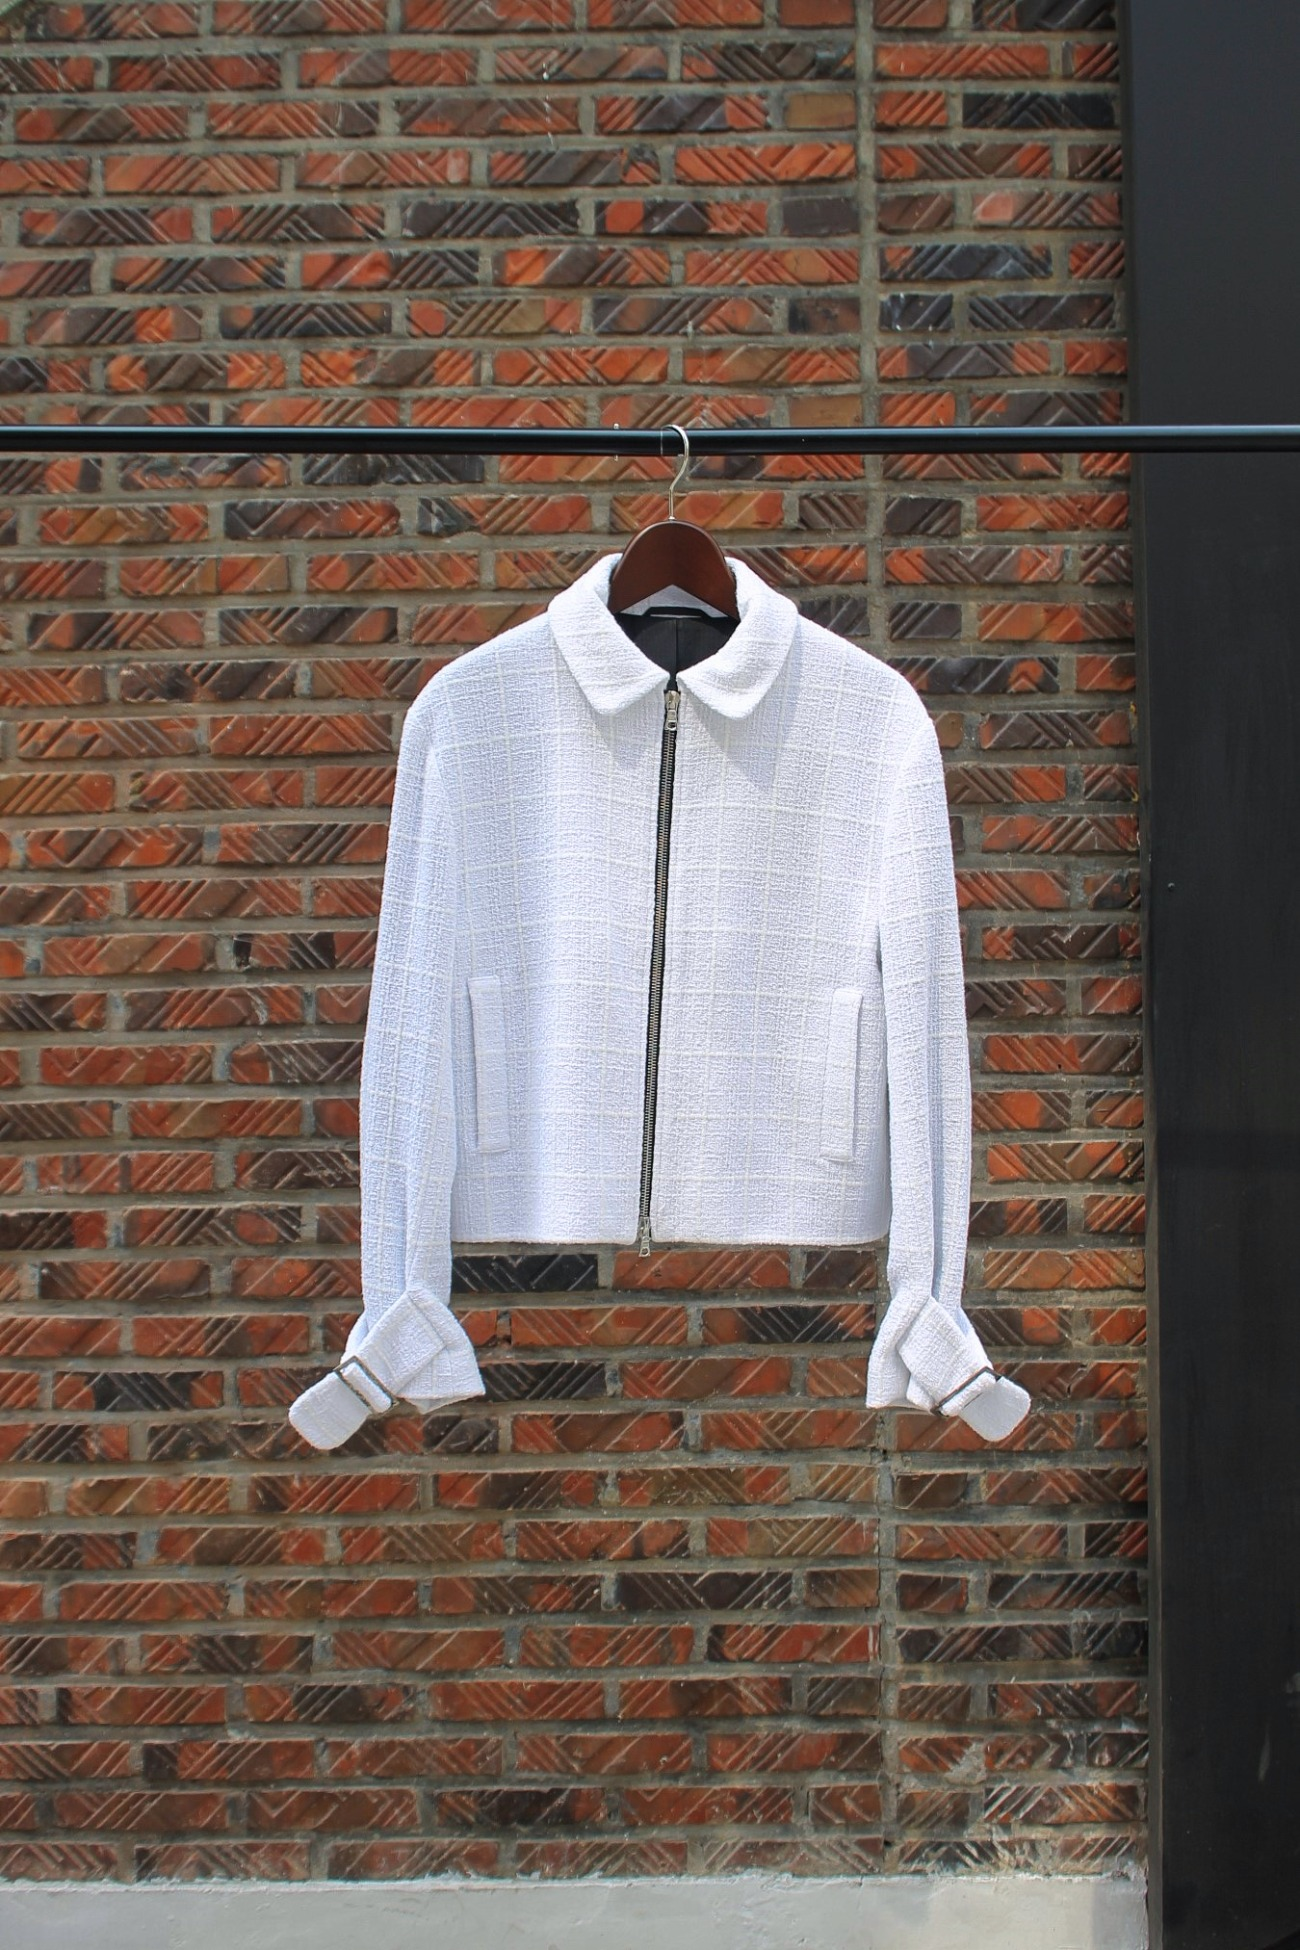 [An Irrational Element] Childhood Jacket - White